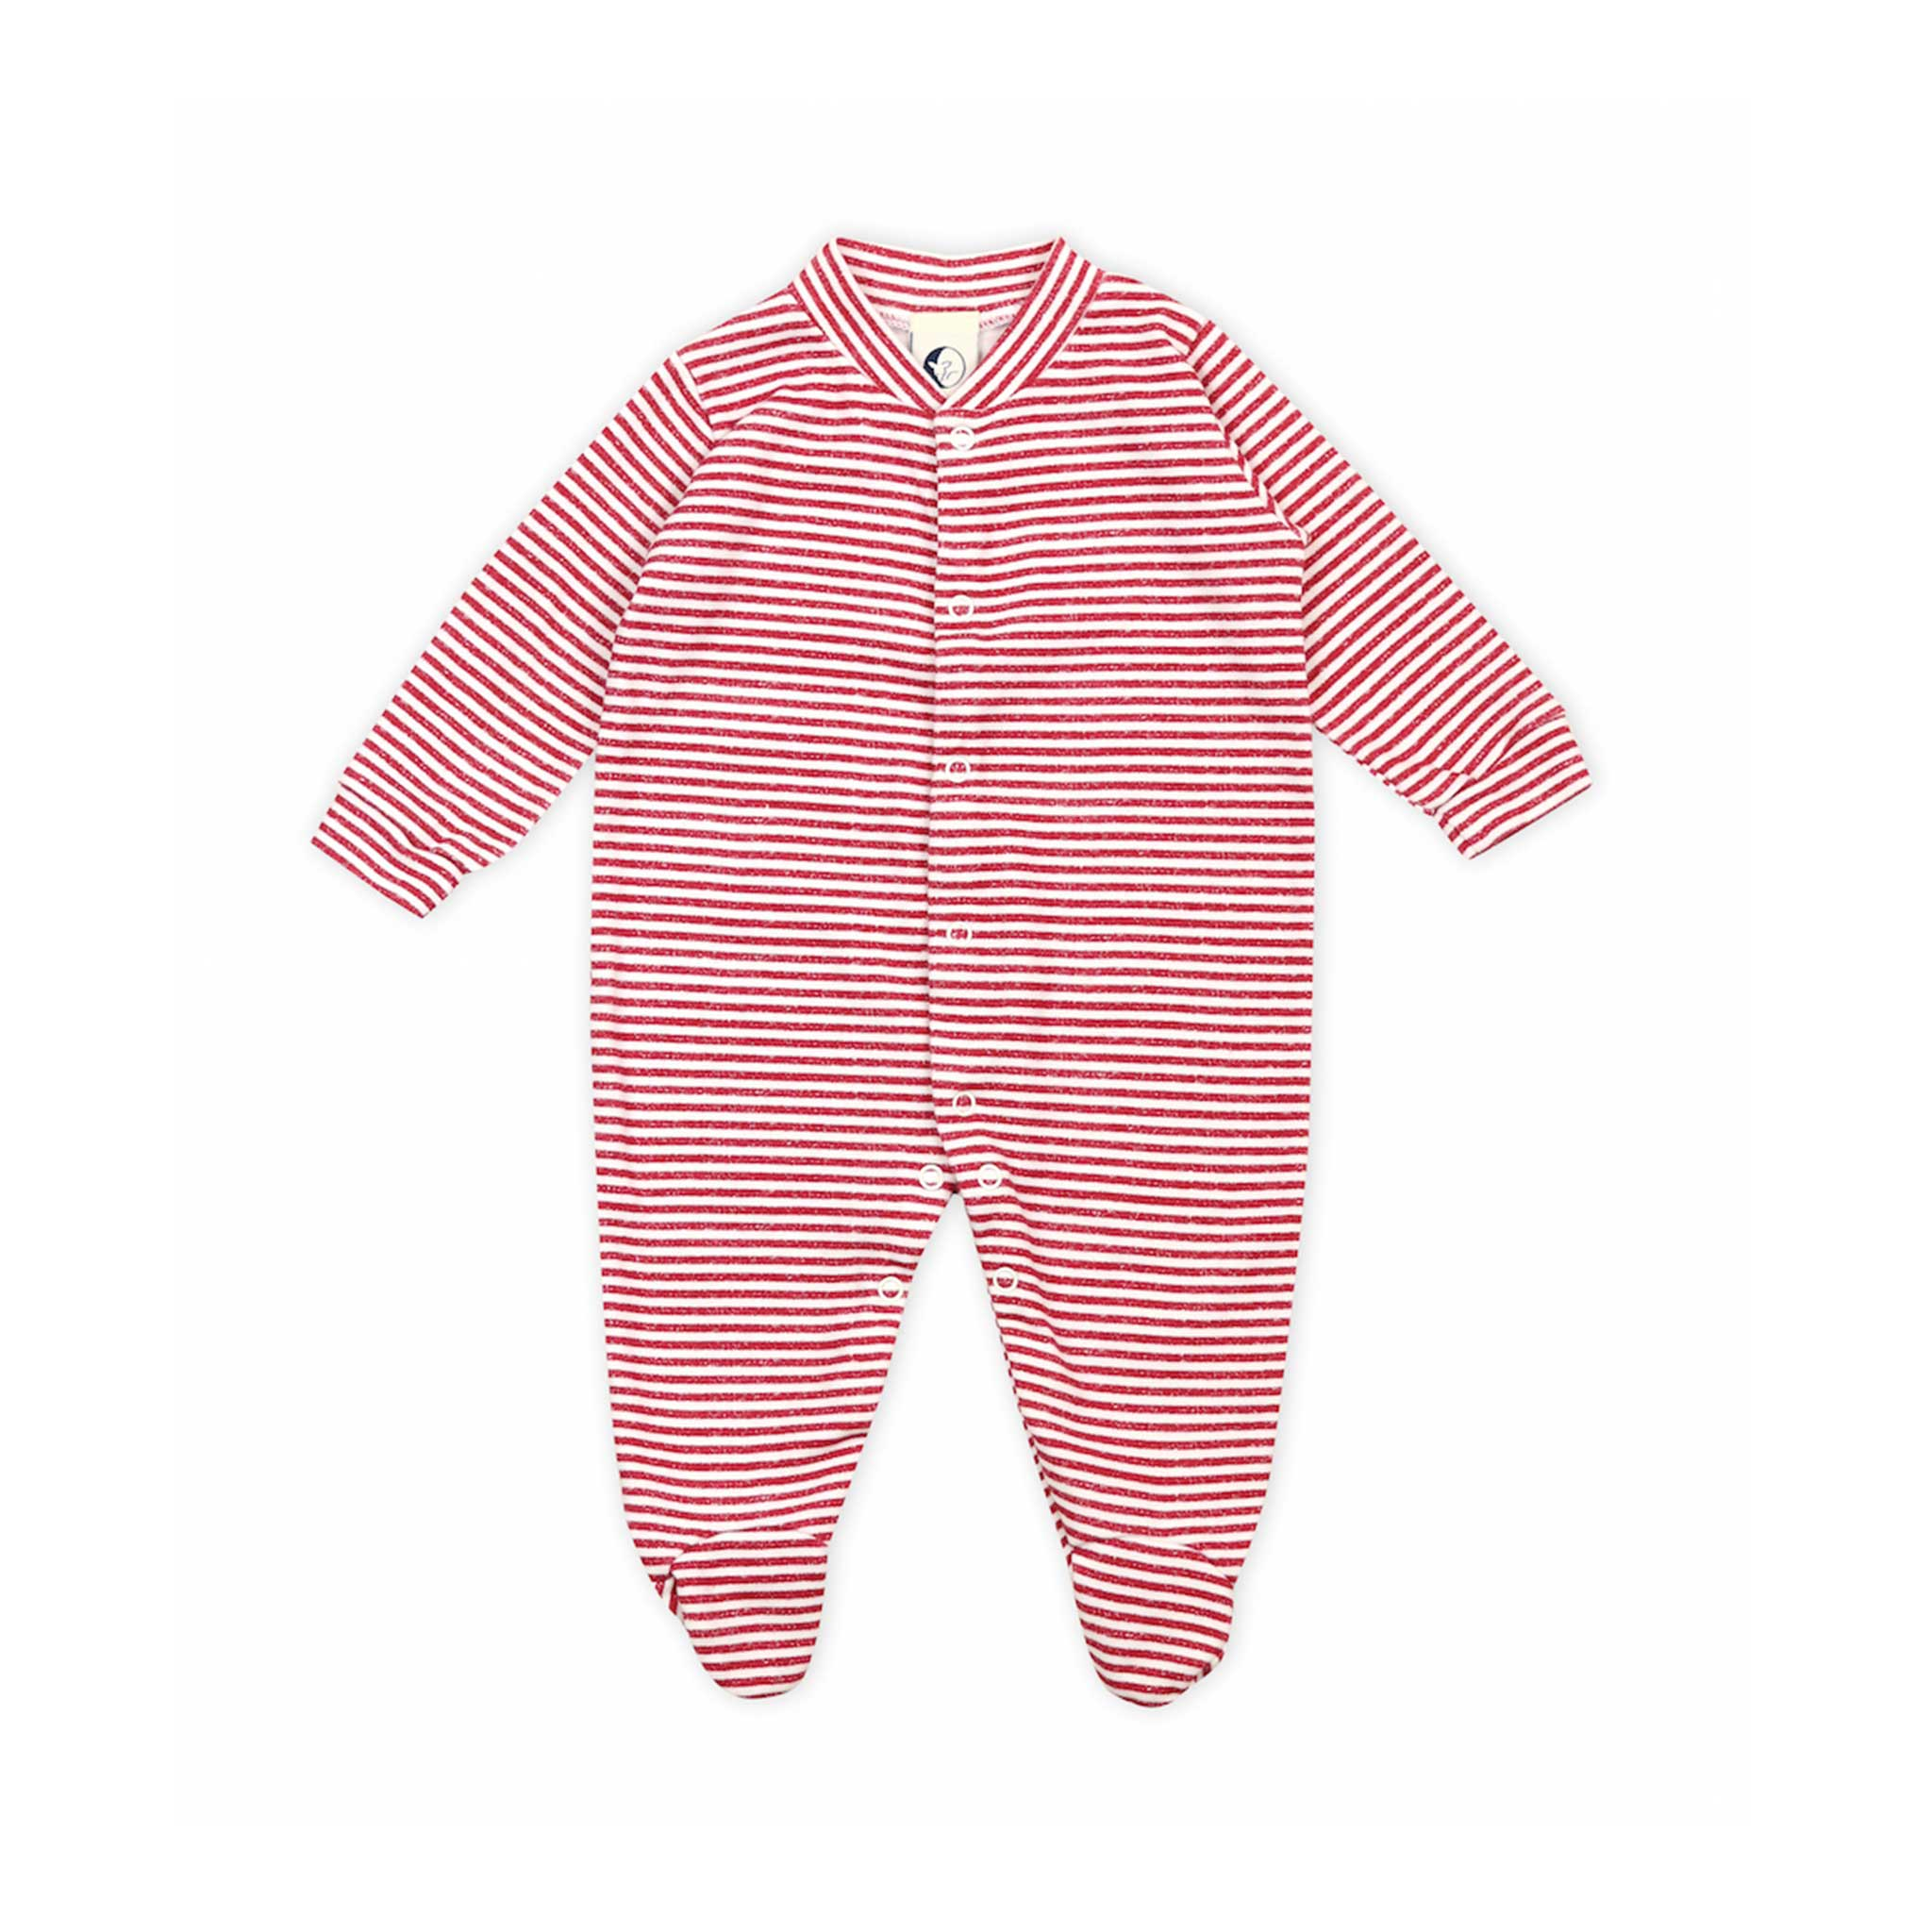 SLEEPY DOE | Baby Sleepsuit | Berry Stripe